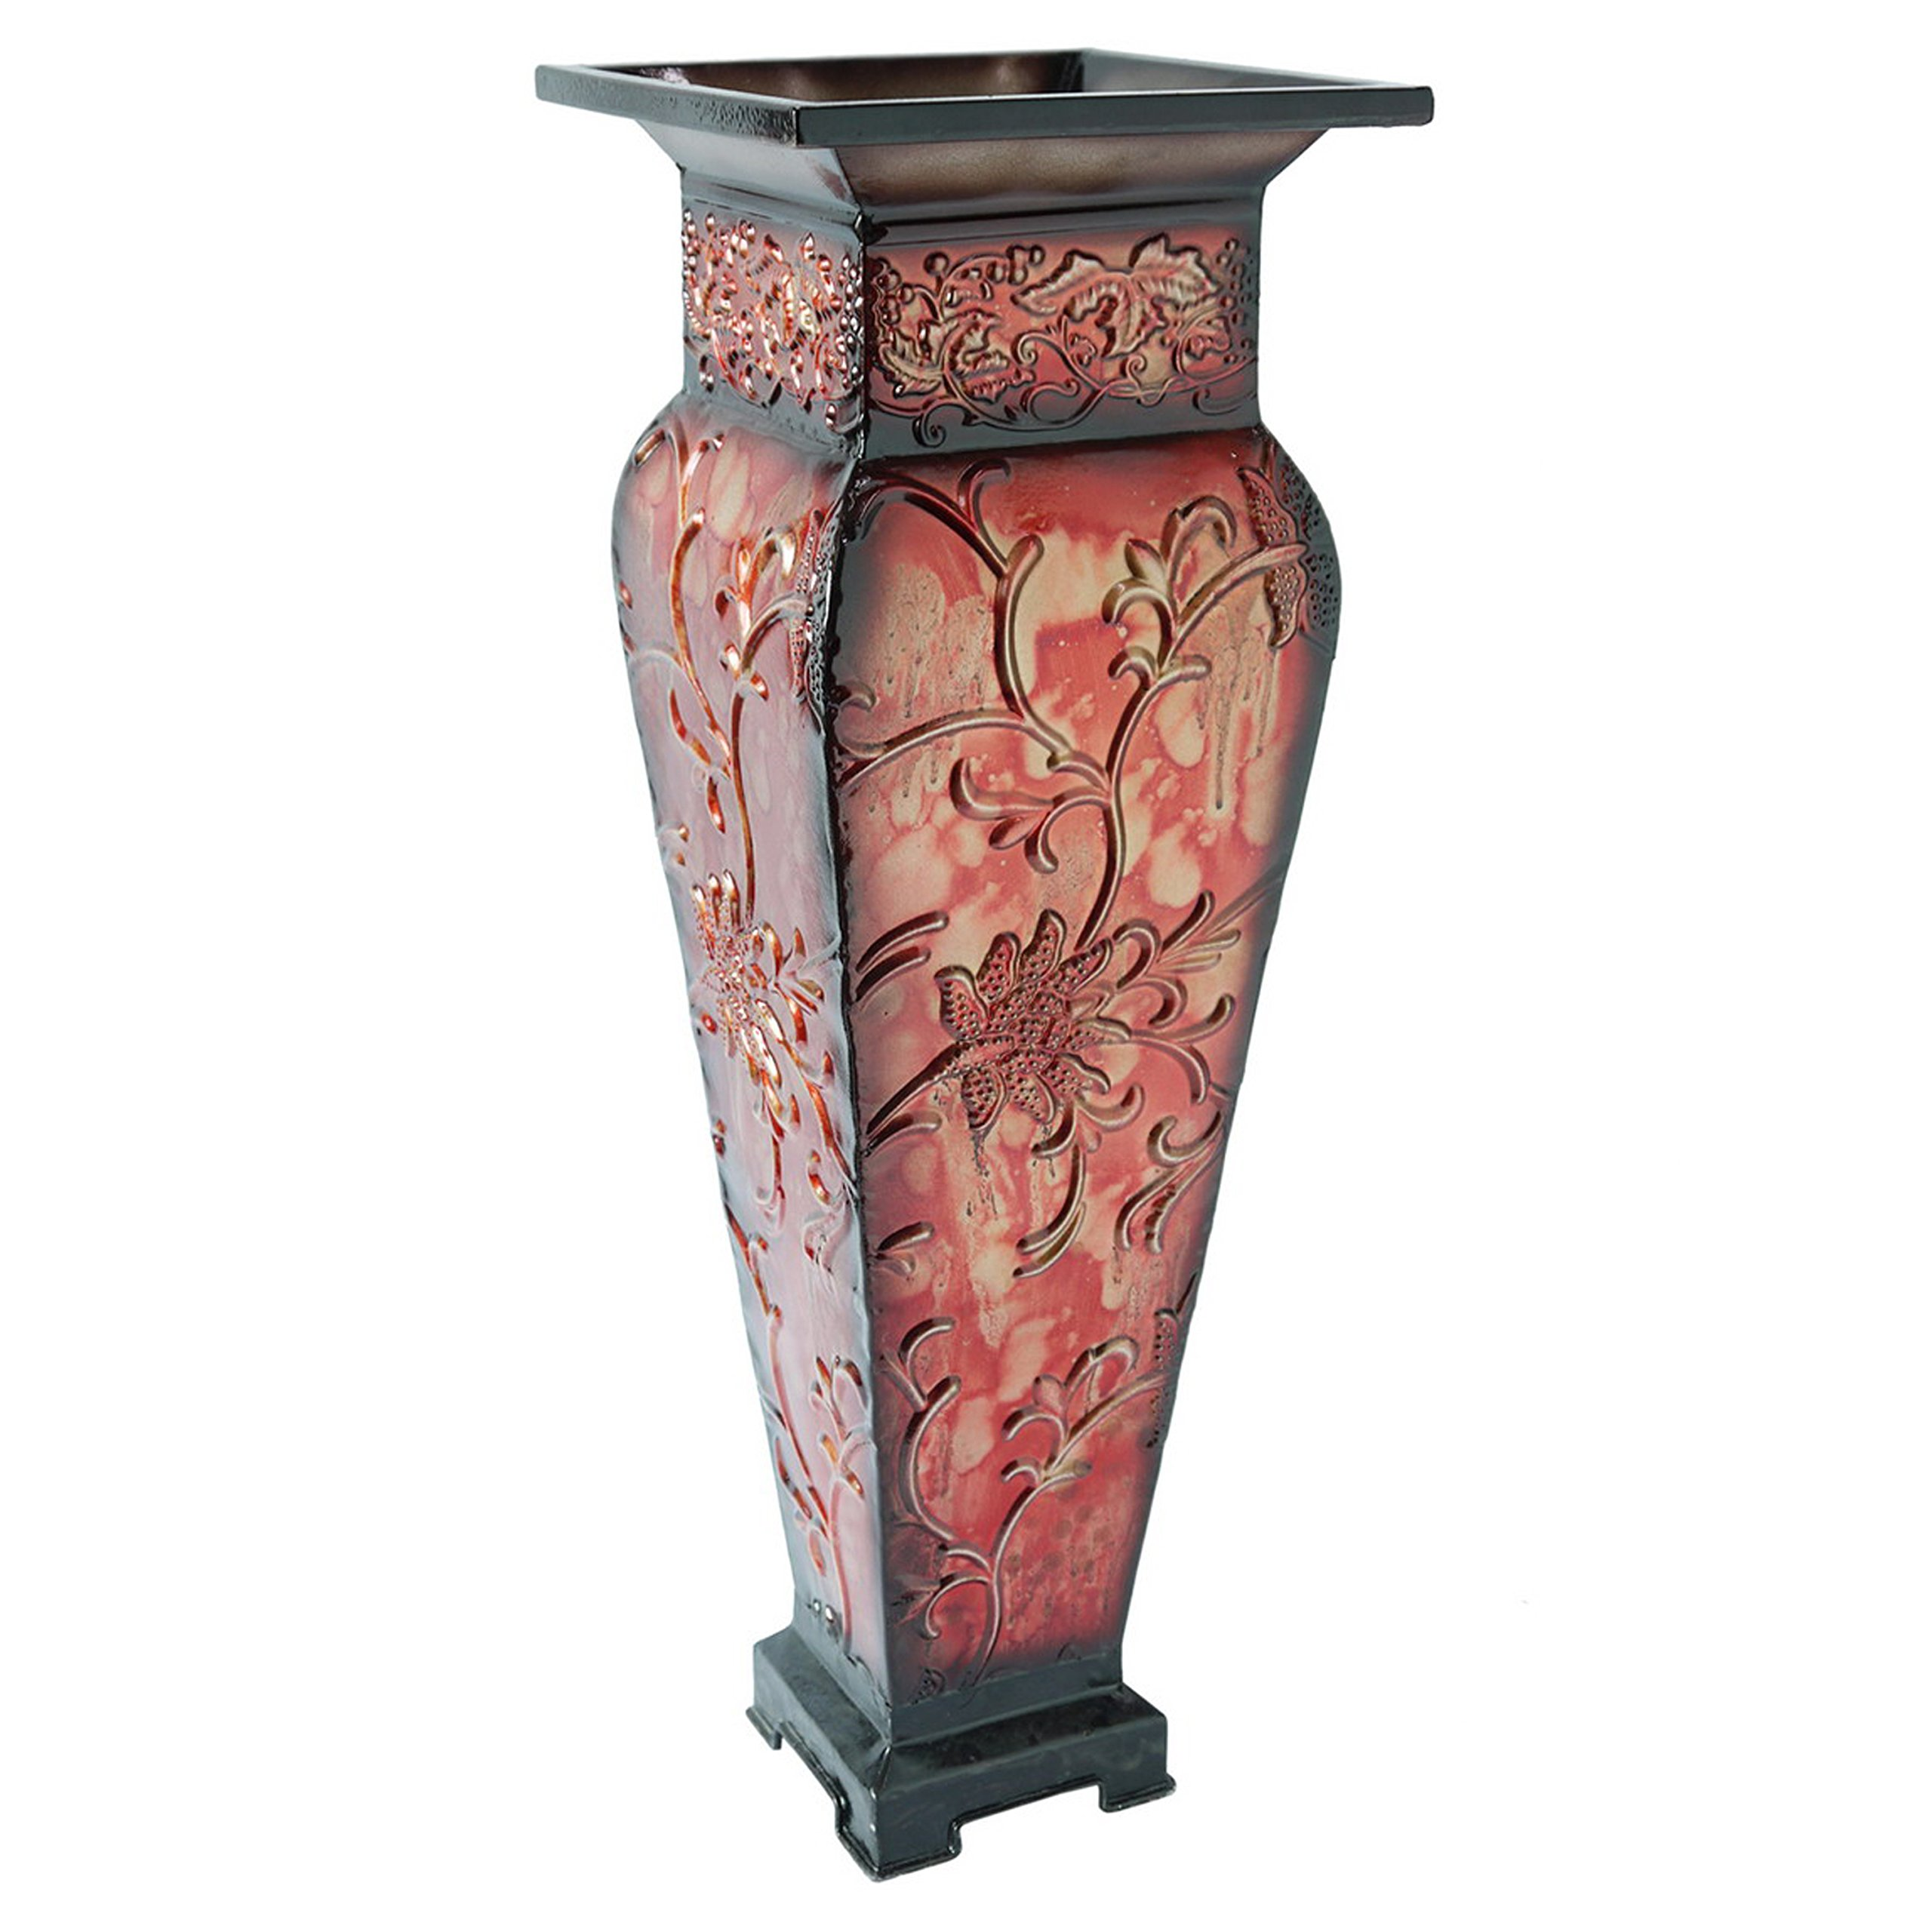 Hosley's 21.25'' Tall Embossed Floor Vase, Red. Ideal Gift for Home Office, Party, Weddings, Office Decor, Dried Floral O4